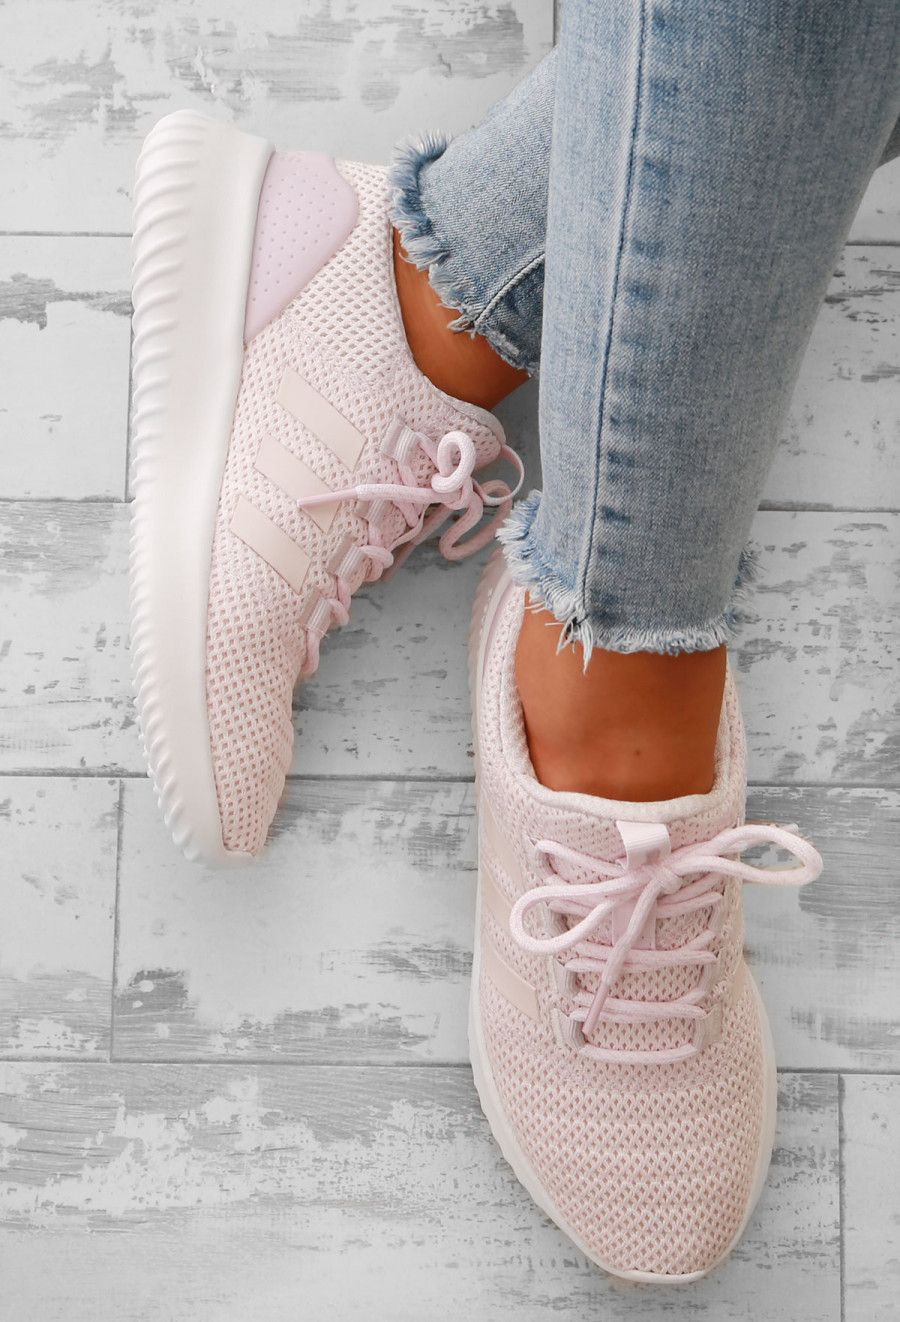 Adidas Pink Cloudfoam Ultimate Trainers   Pink adidas, Pink and ...